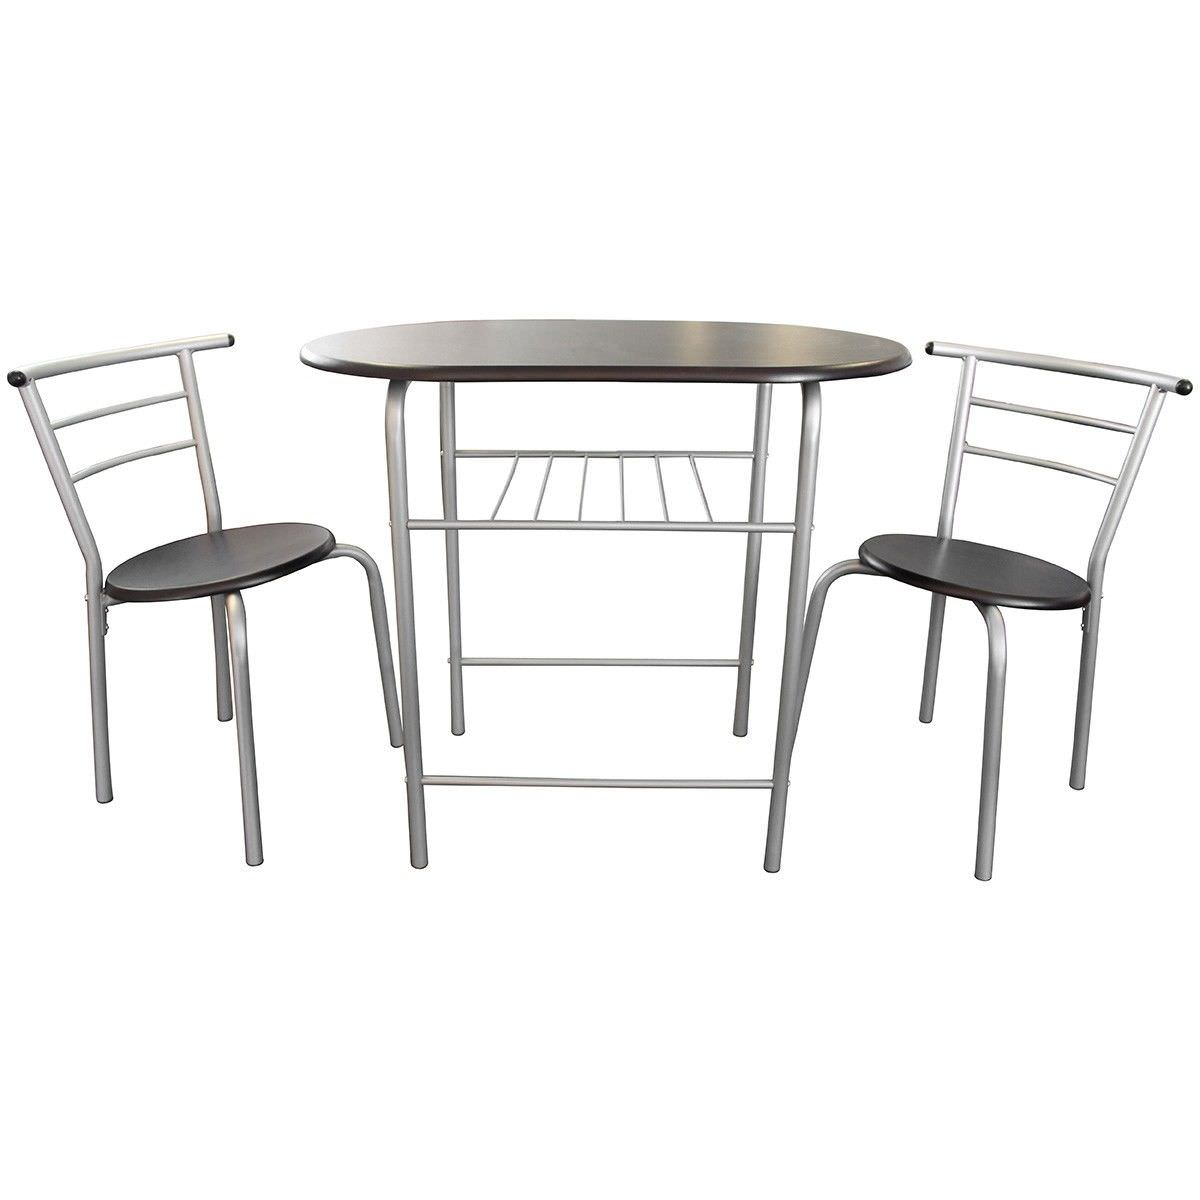 Lofty 3 Piece Breakfast Table Set, Walnut / Silver